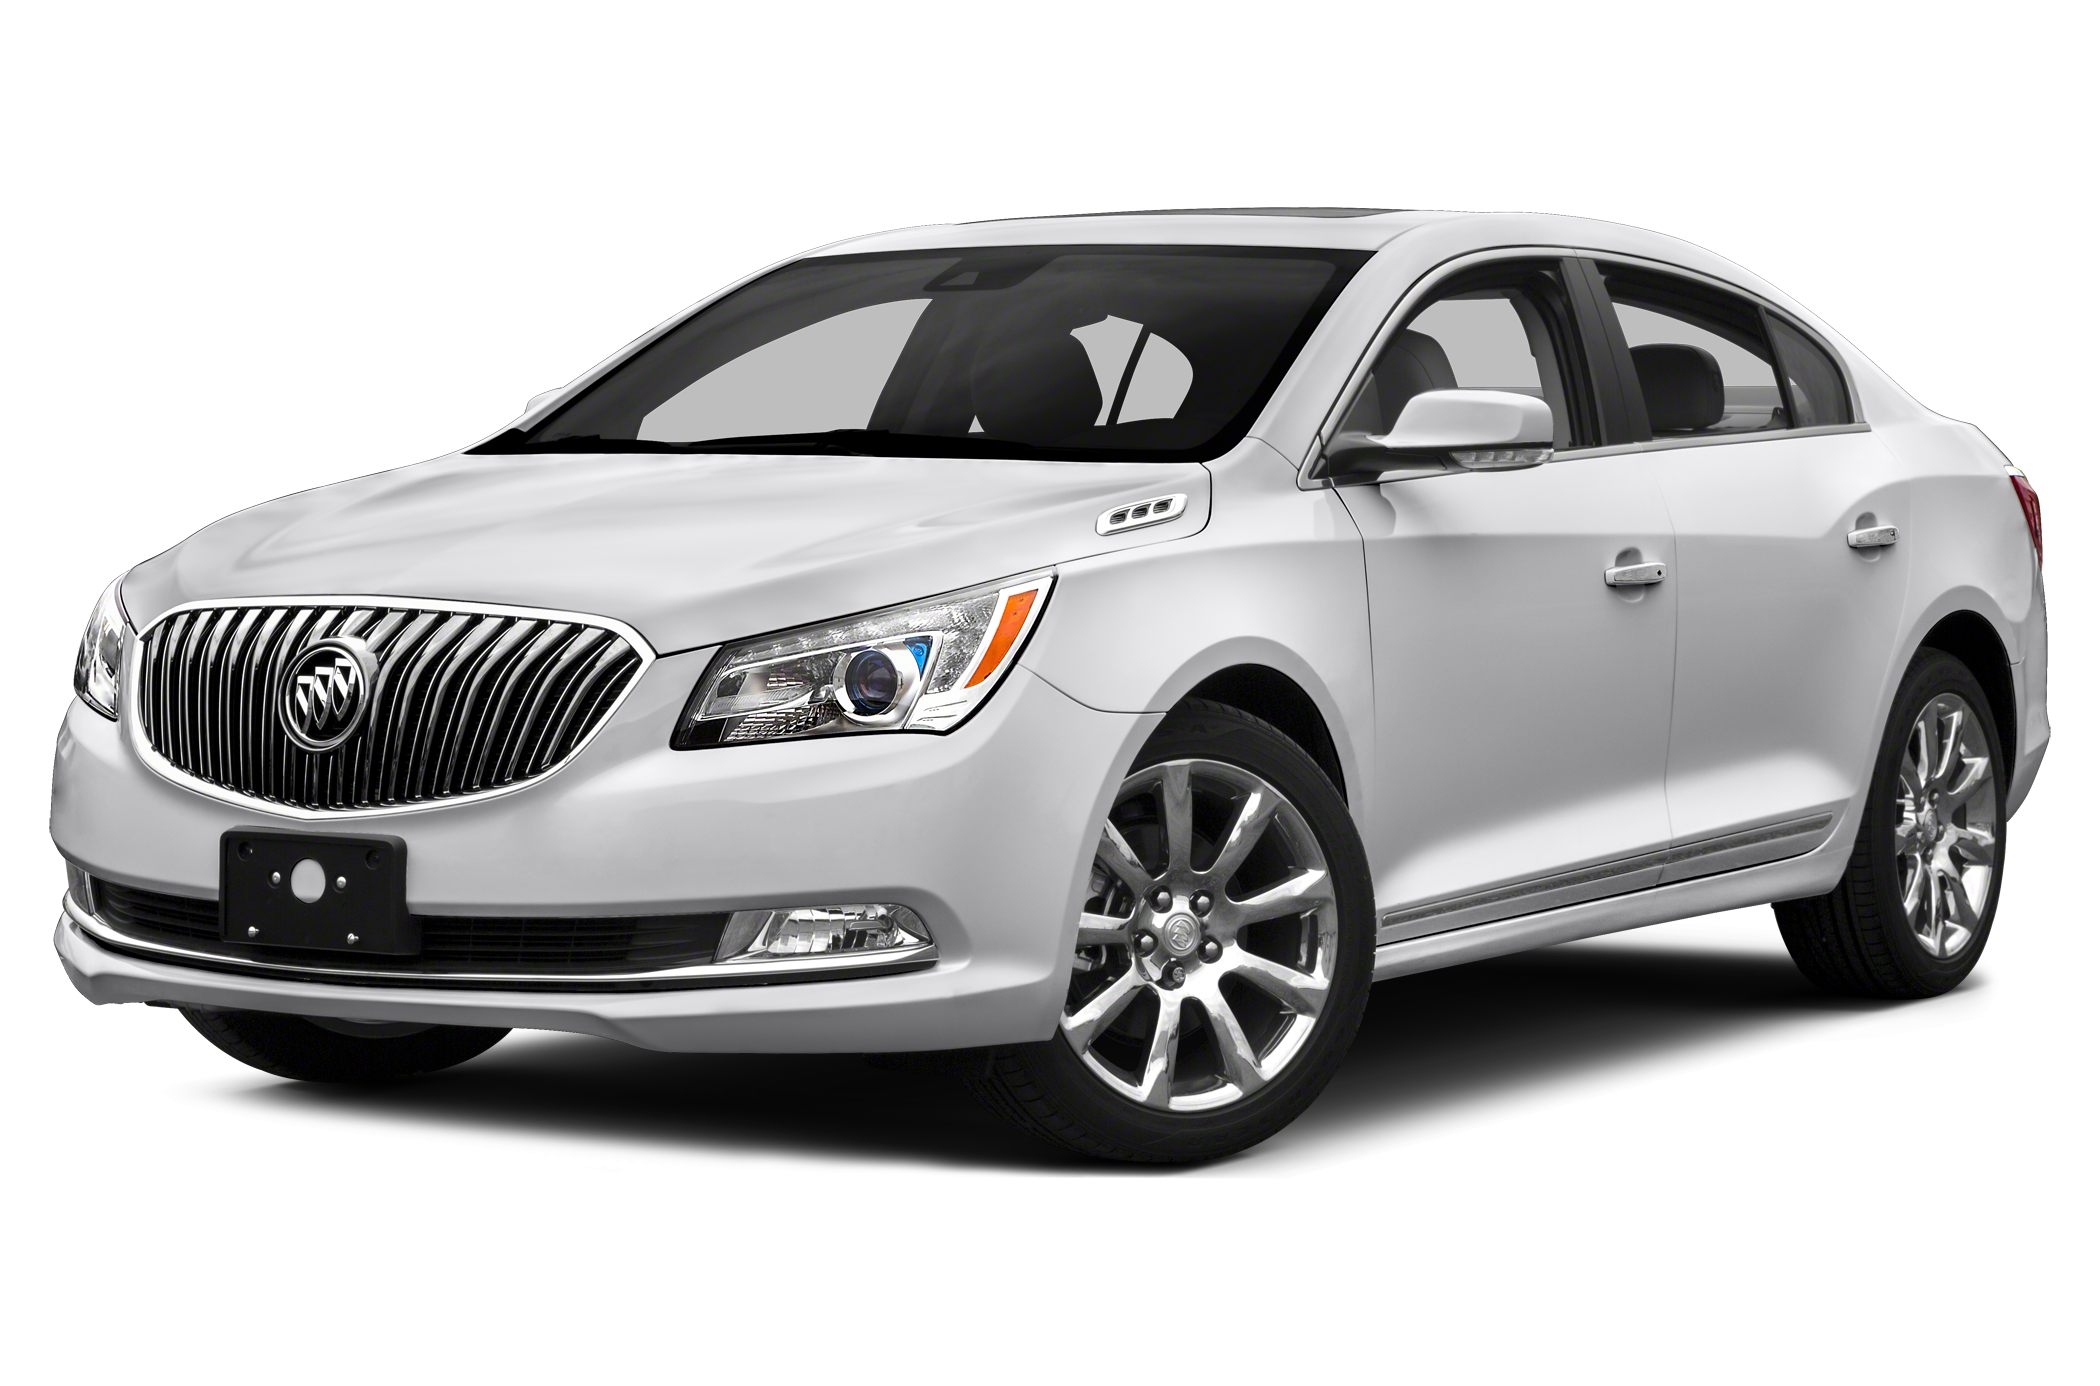 2014 Buick LaCrosse Leather Sedan for sale in Tiffin for $39,030 with 0 miles.